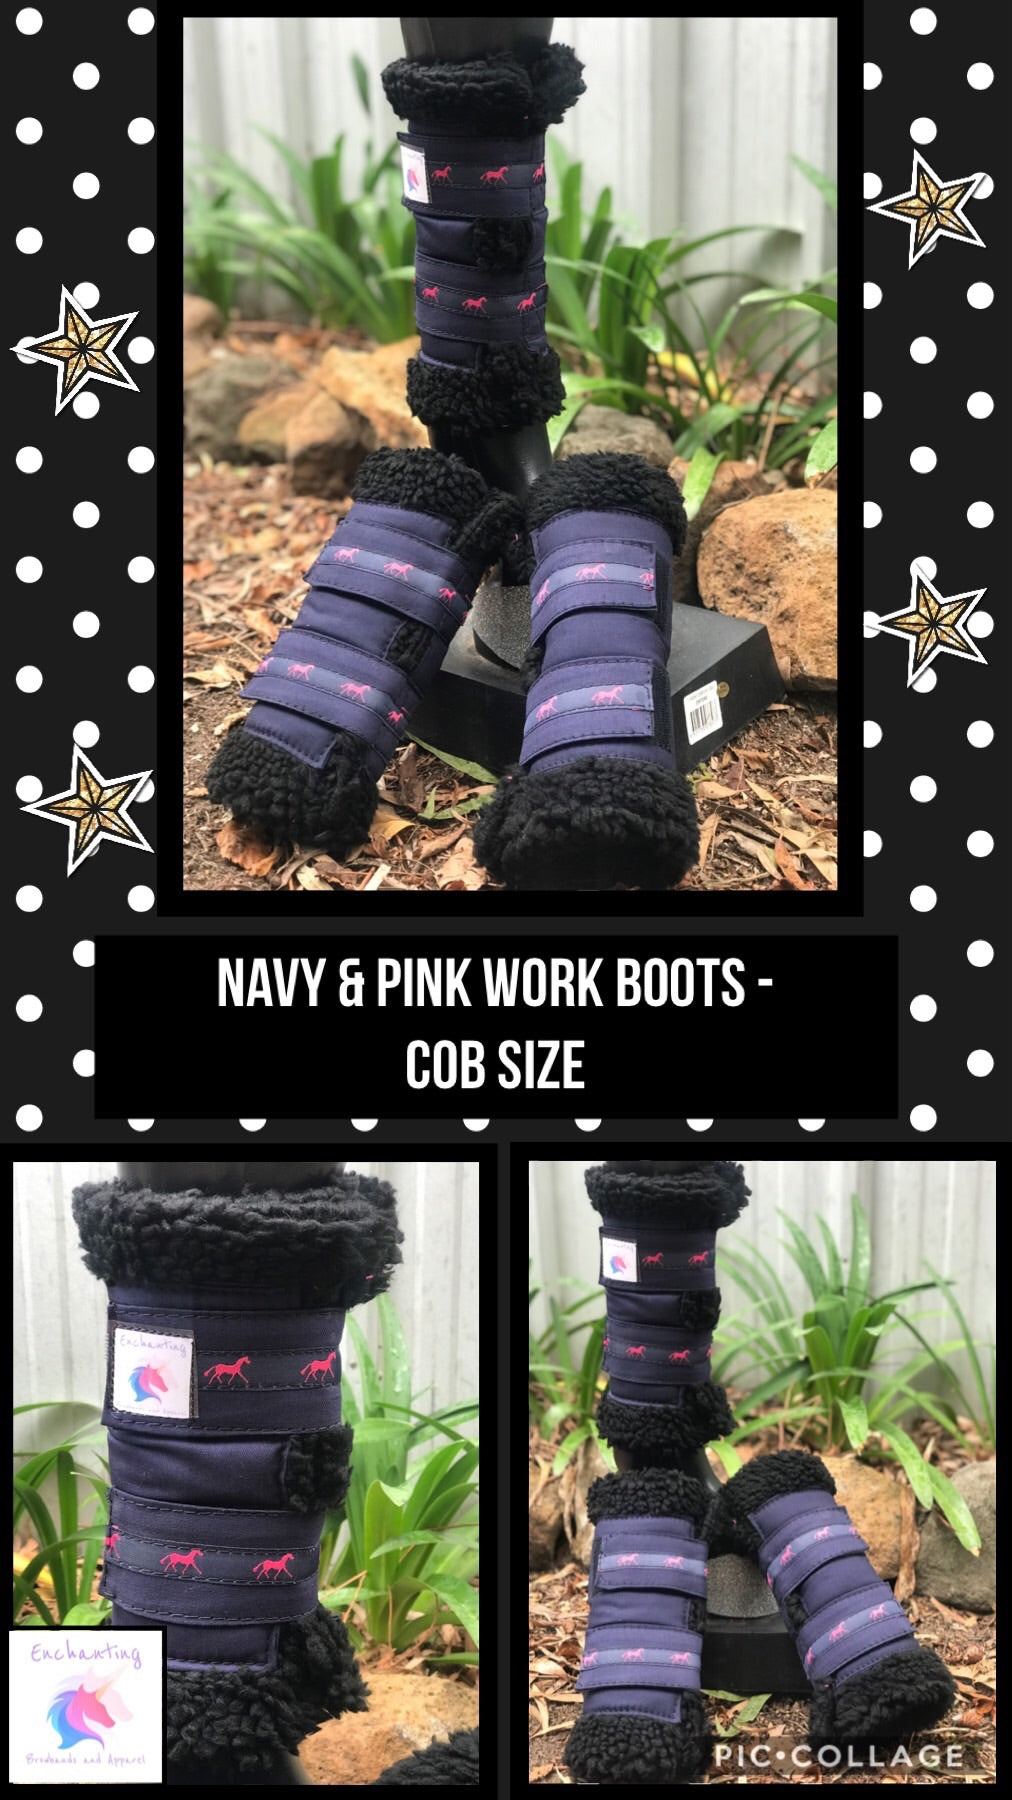 Navy & pink boots